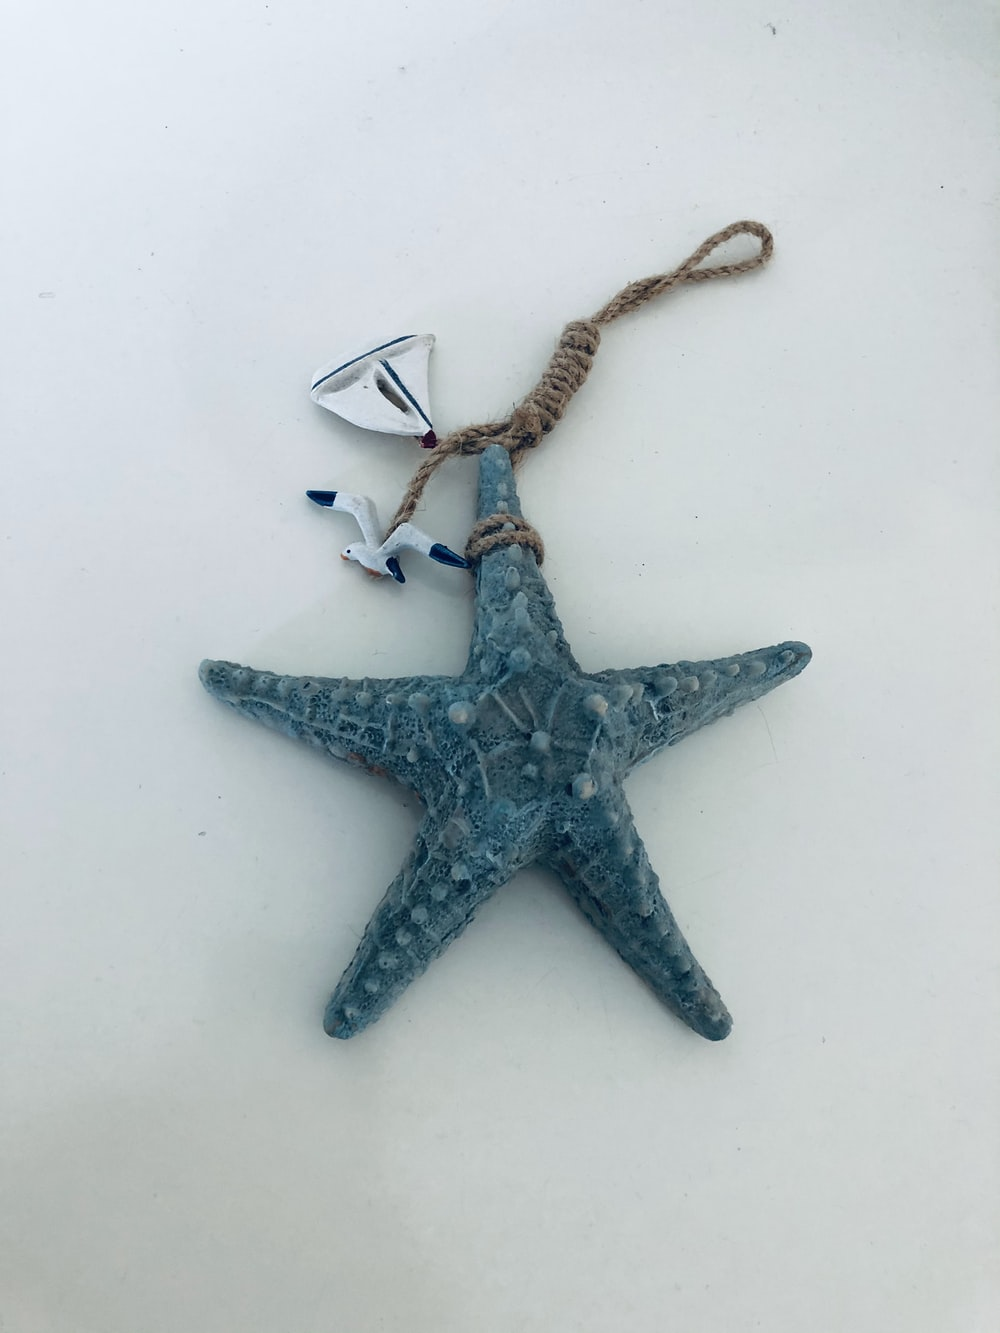 silver star pendant necklace on white surface